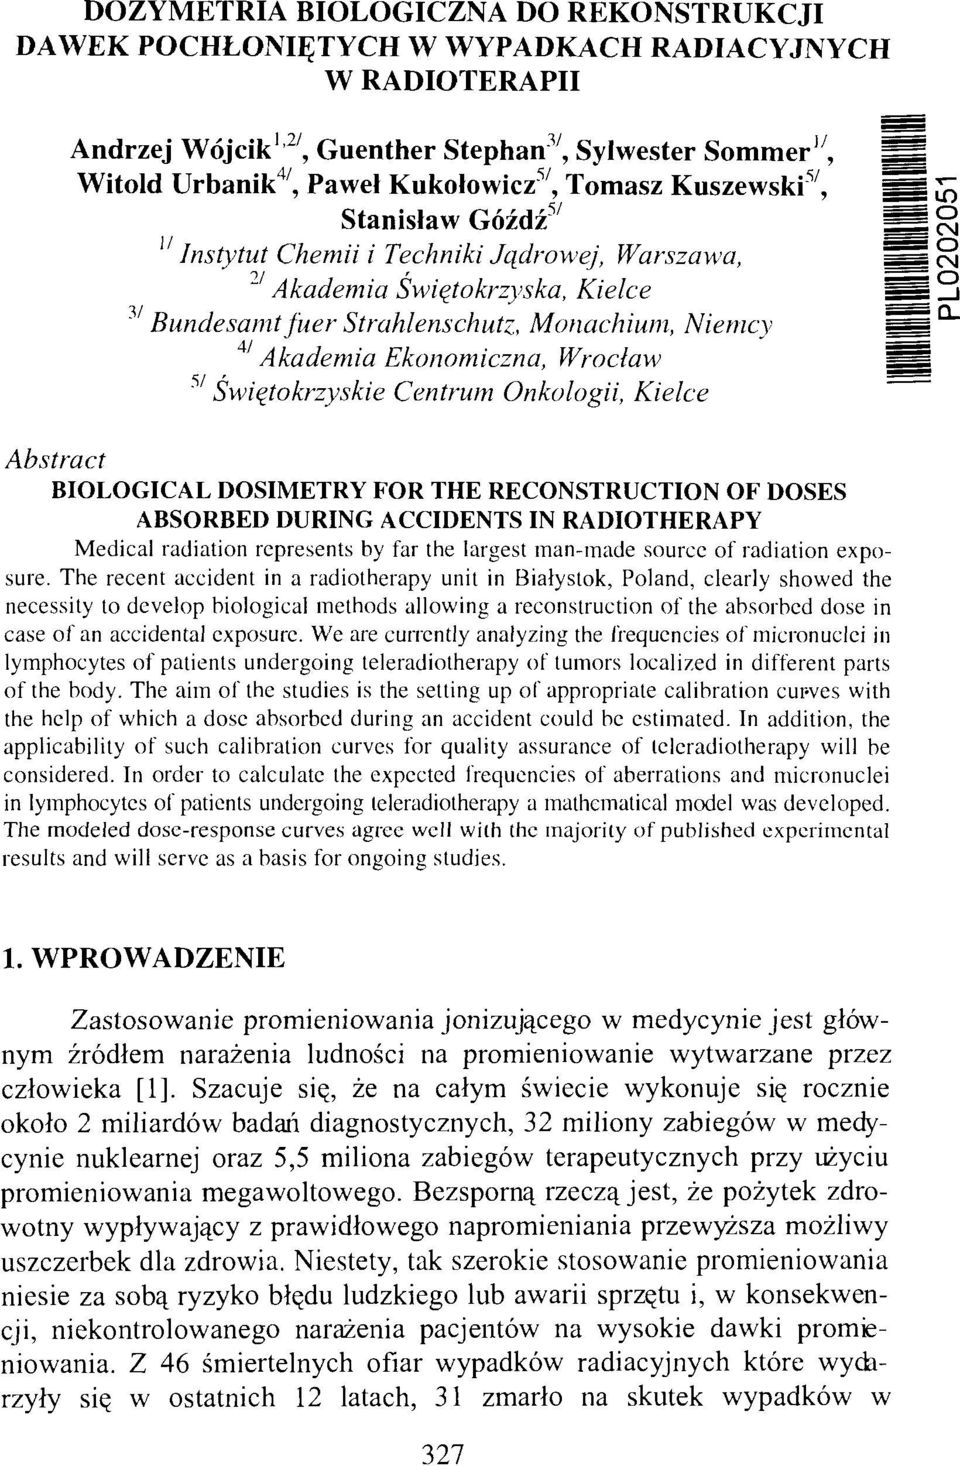 Wroclaw 57 Świętokrzyskie Centrum Onkologii, Kielce Abstract BIOLOGICAL DOSIMETRY FOR THE RECONSTRUCTION OF DOSES ABSORBED DURING ACCIDENTS IN RADIOTHERAPY Medical radiation represents by far the